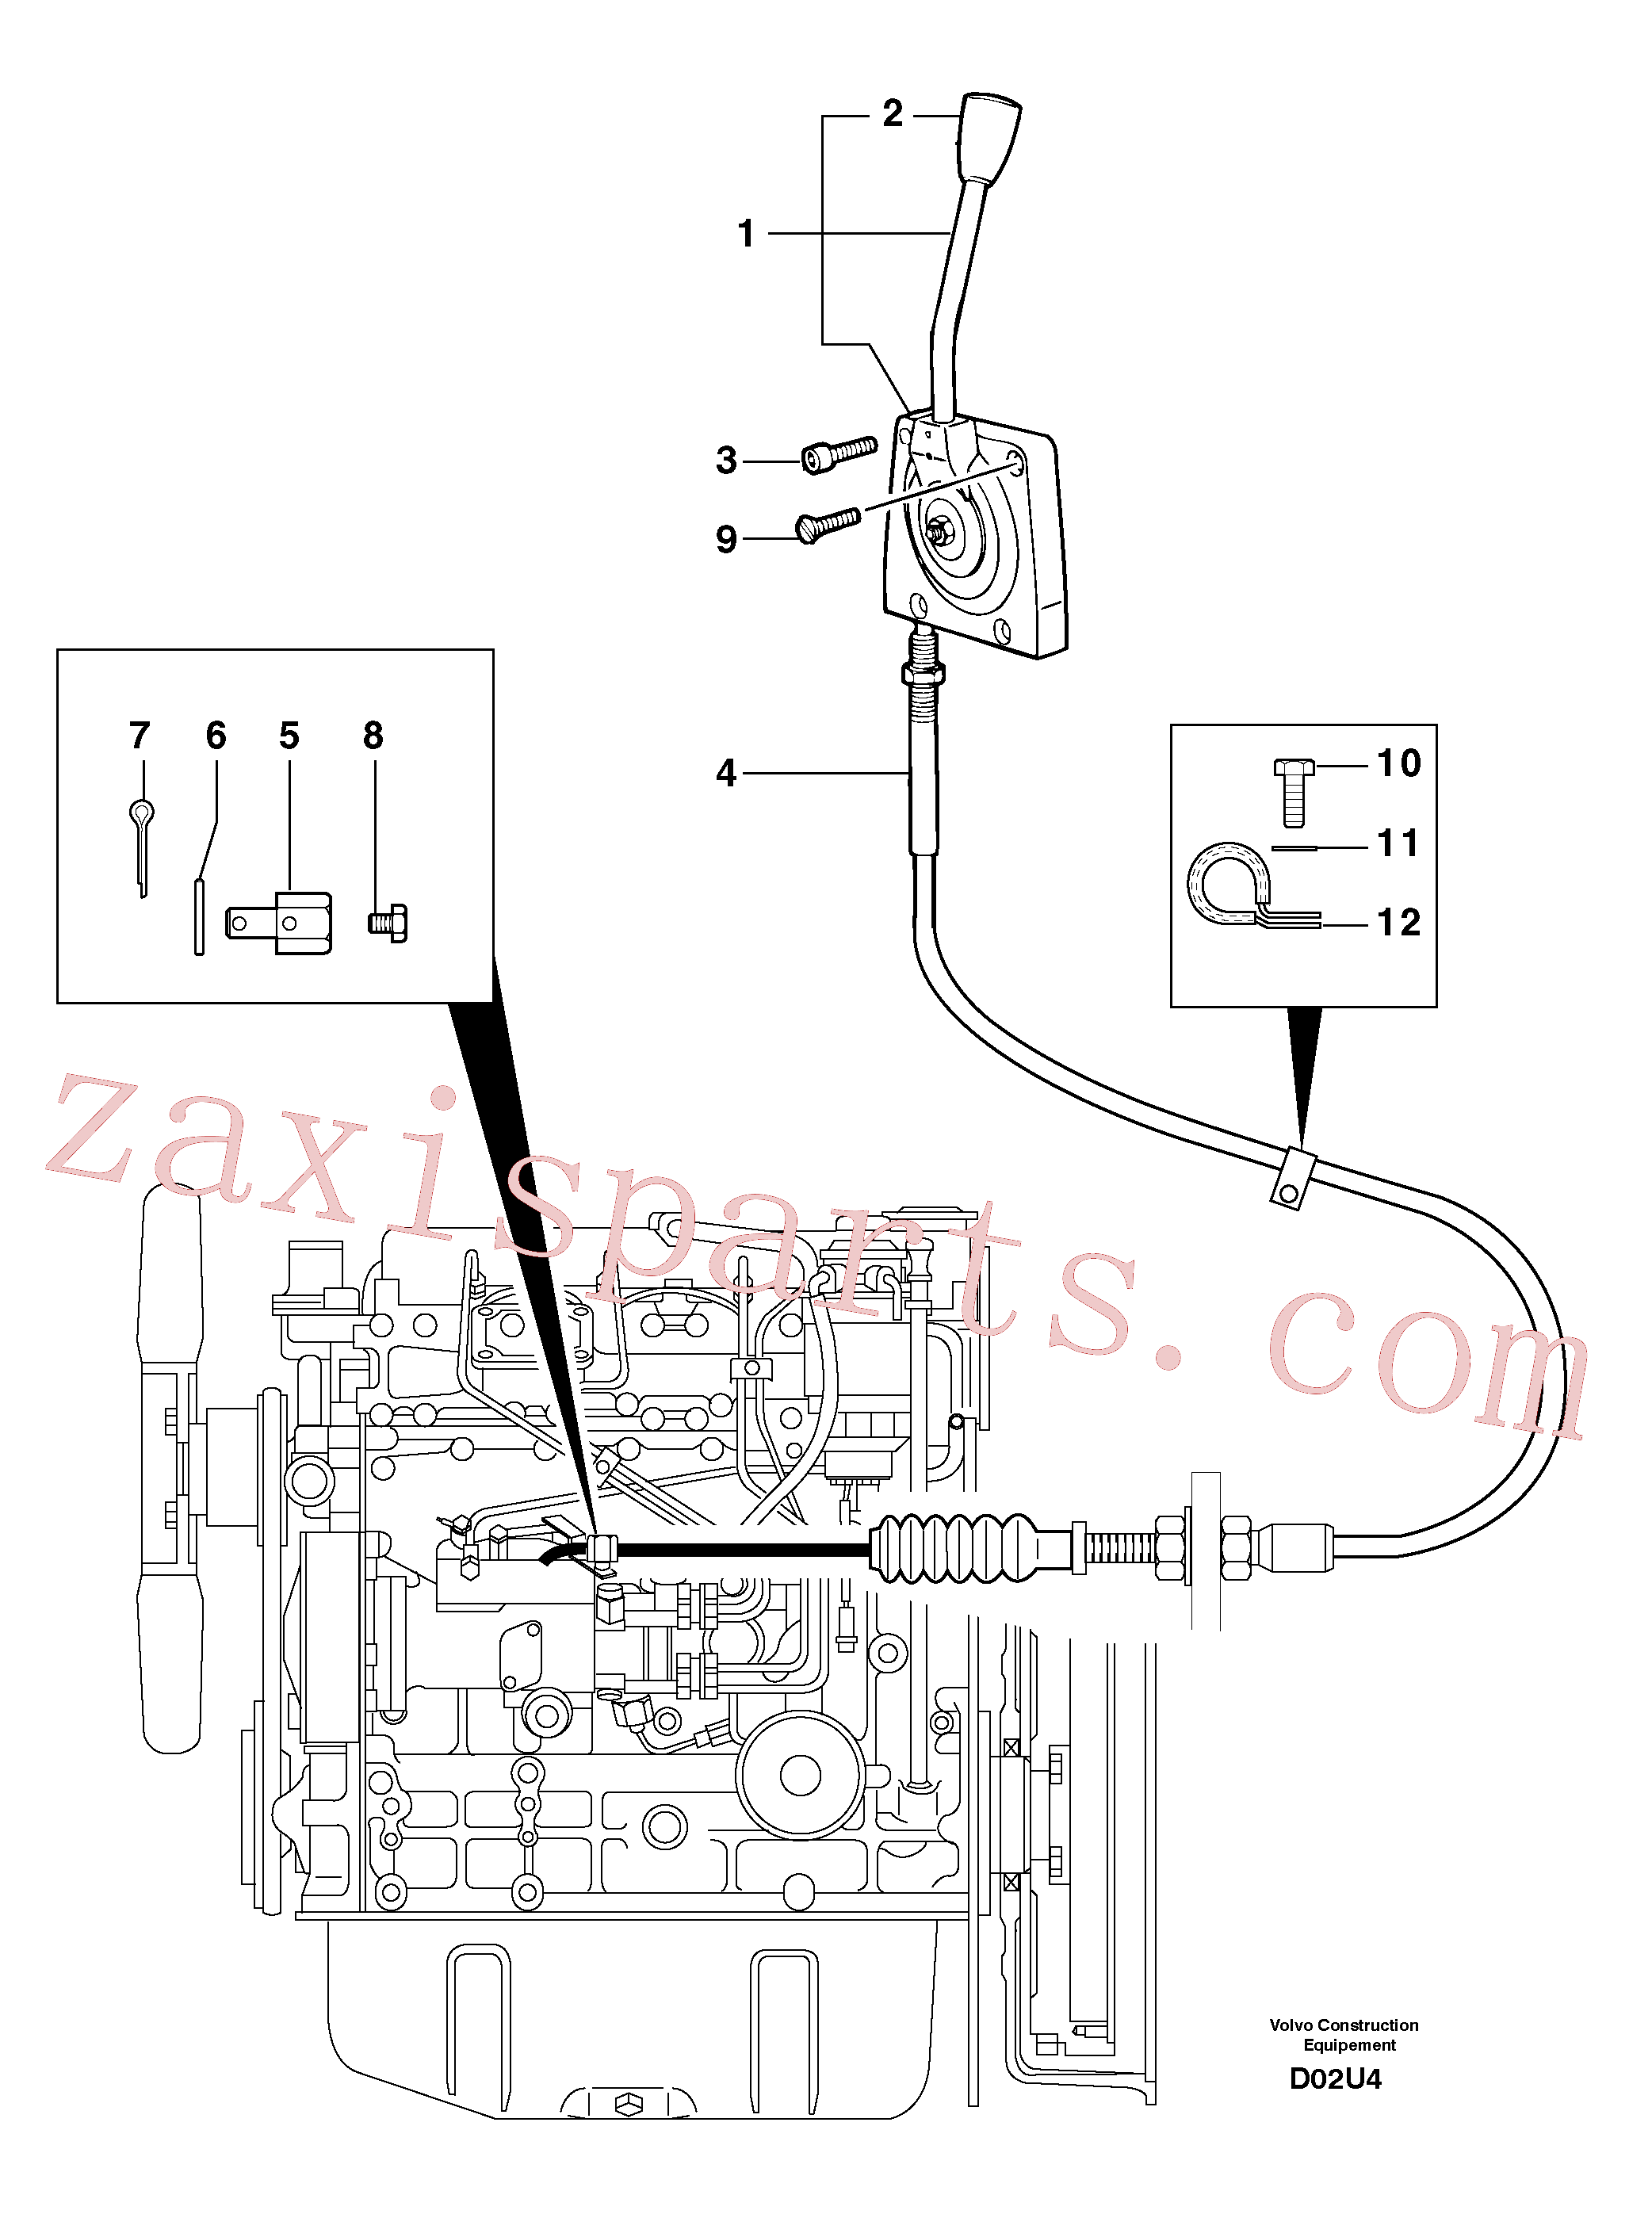 PJ4690189 for Volvo Engine acceleration control(D02U4 assembly)